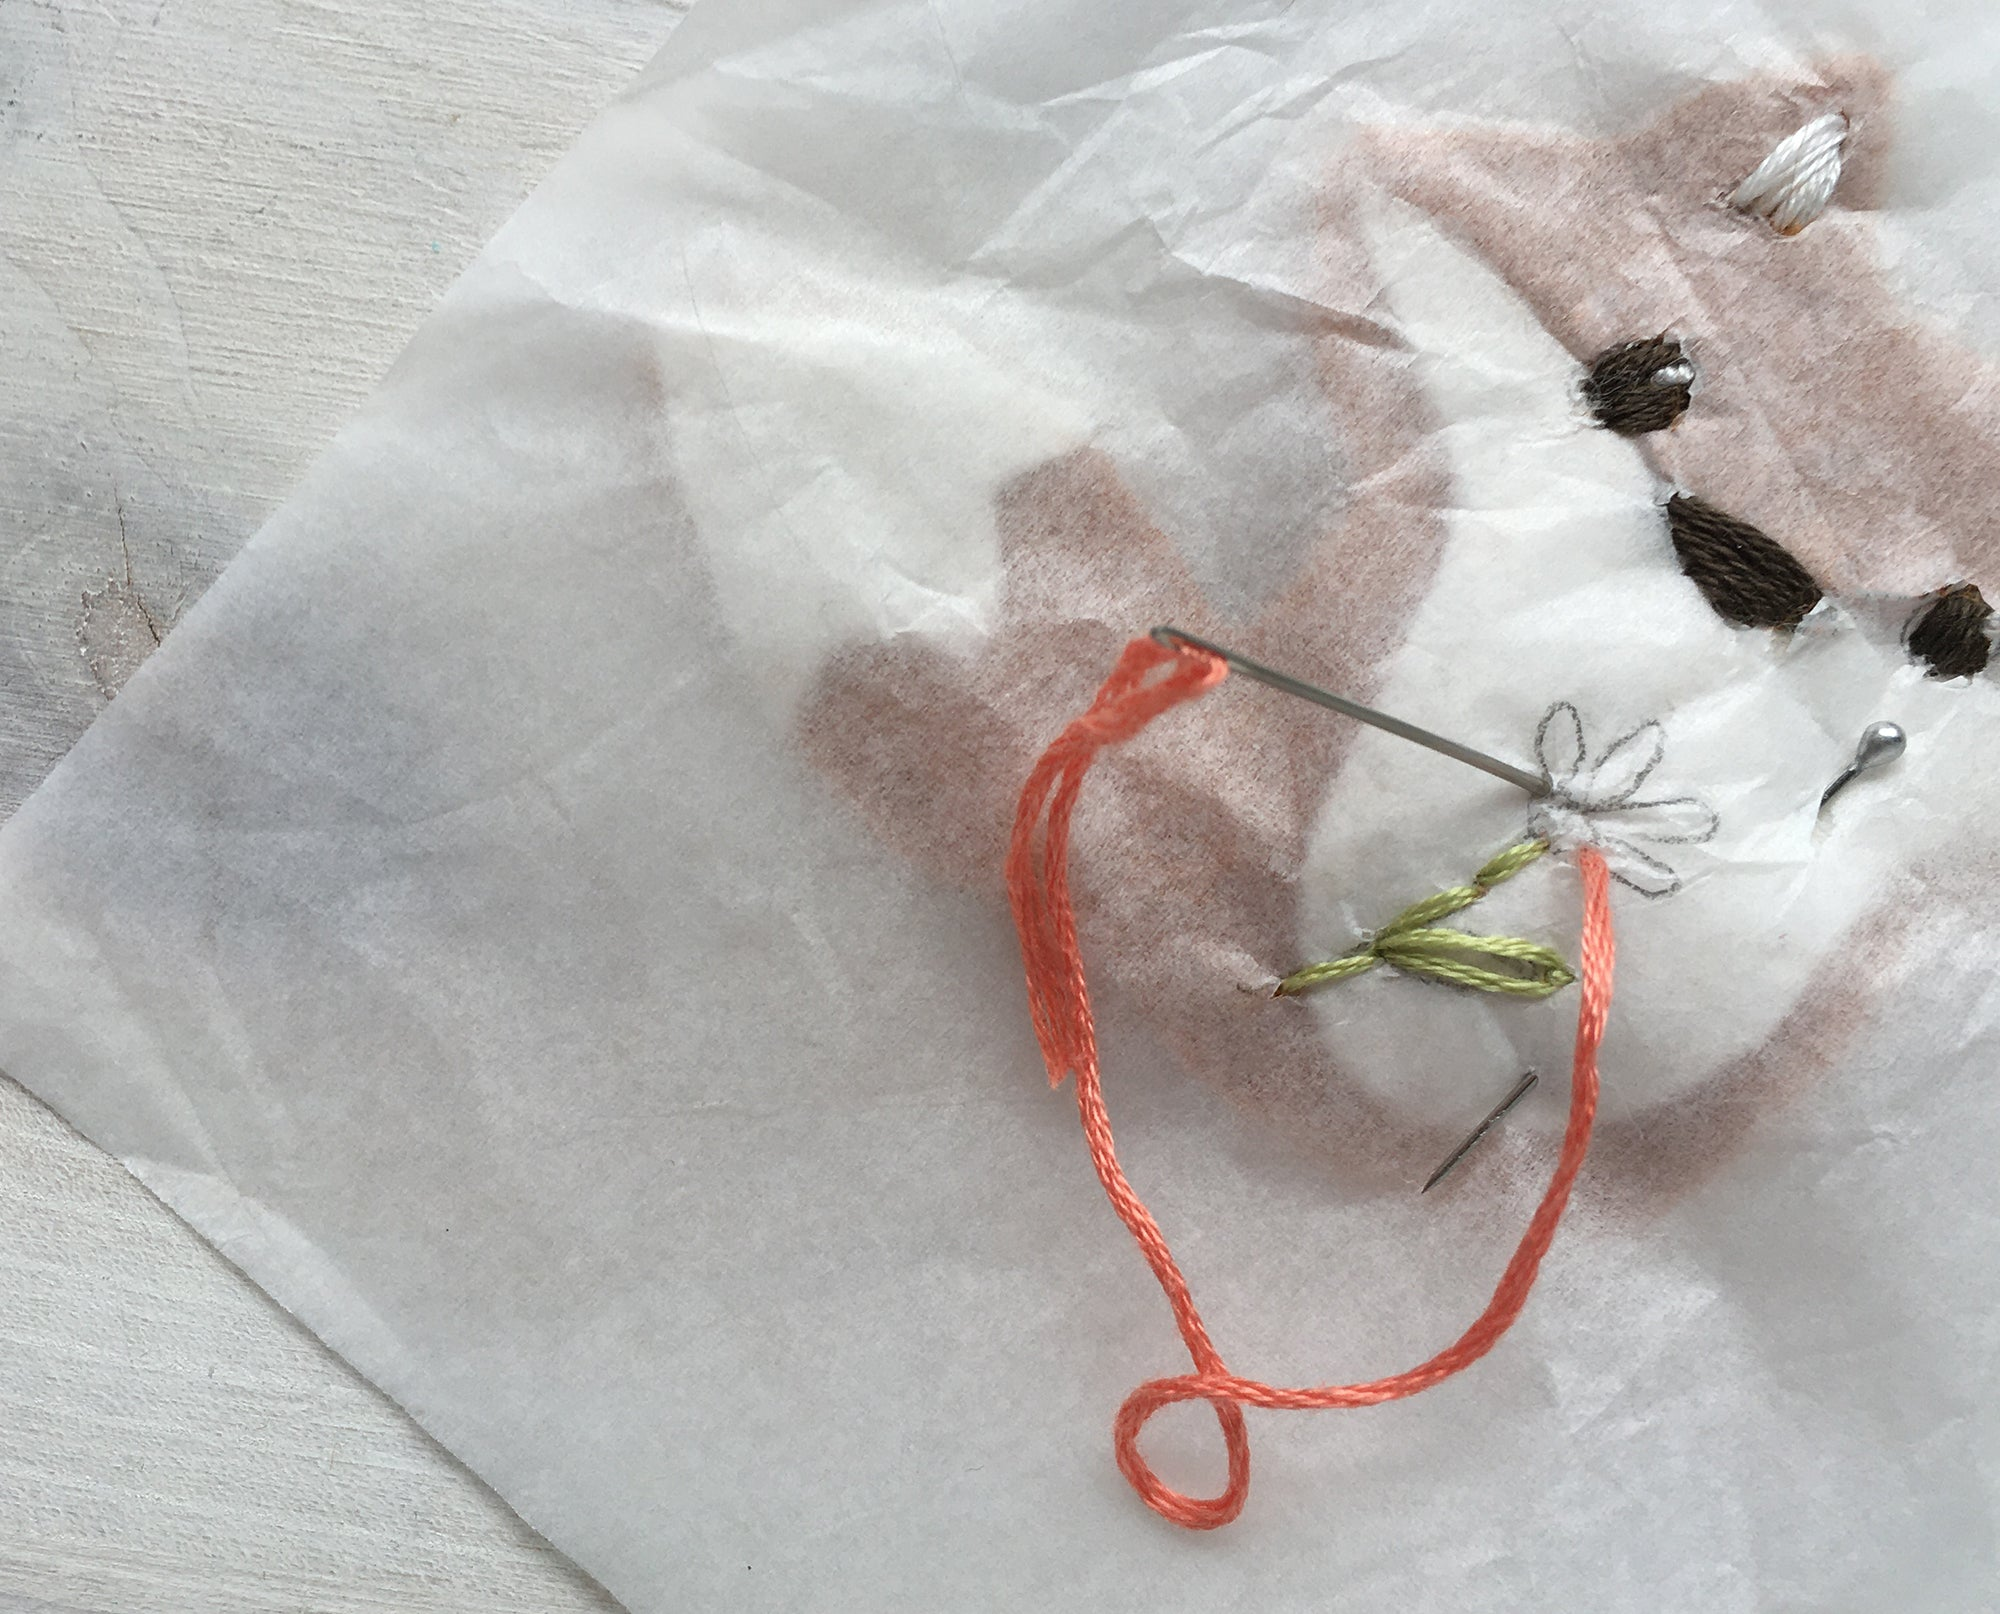 Embroidering through tissue template